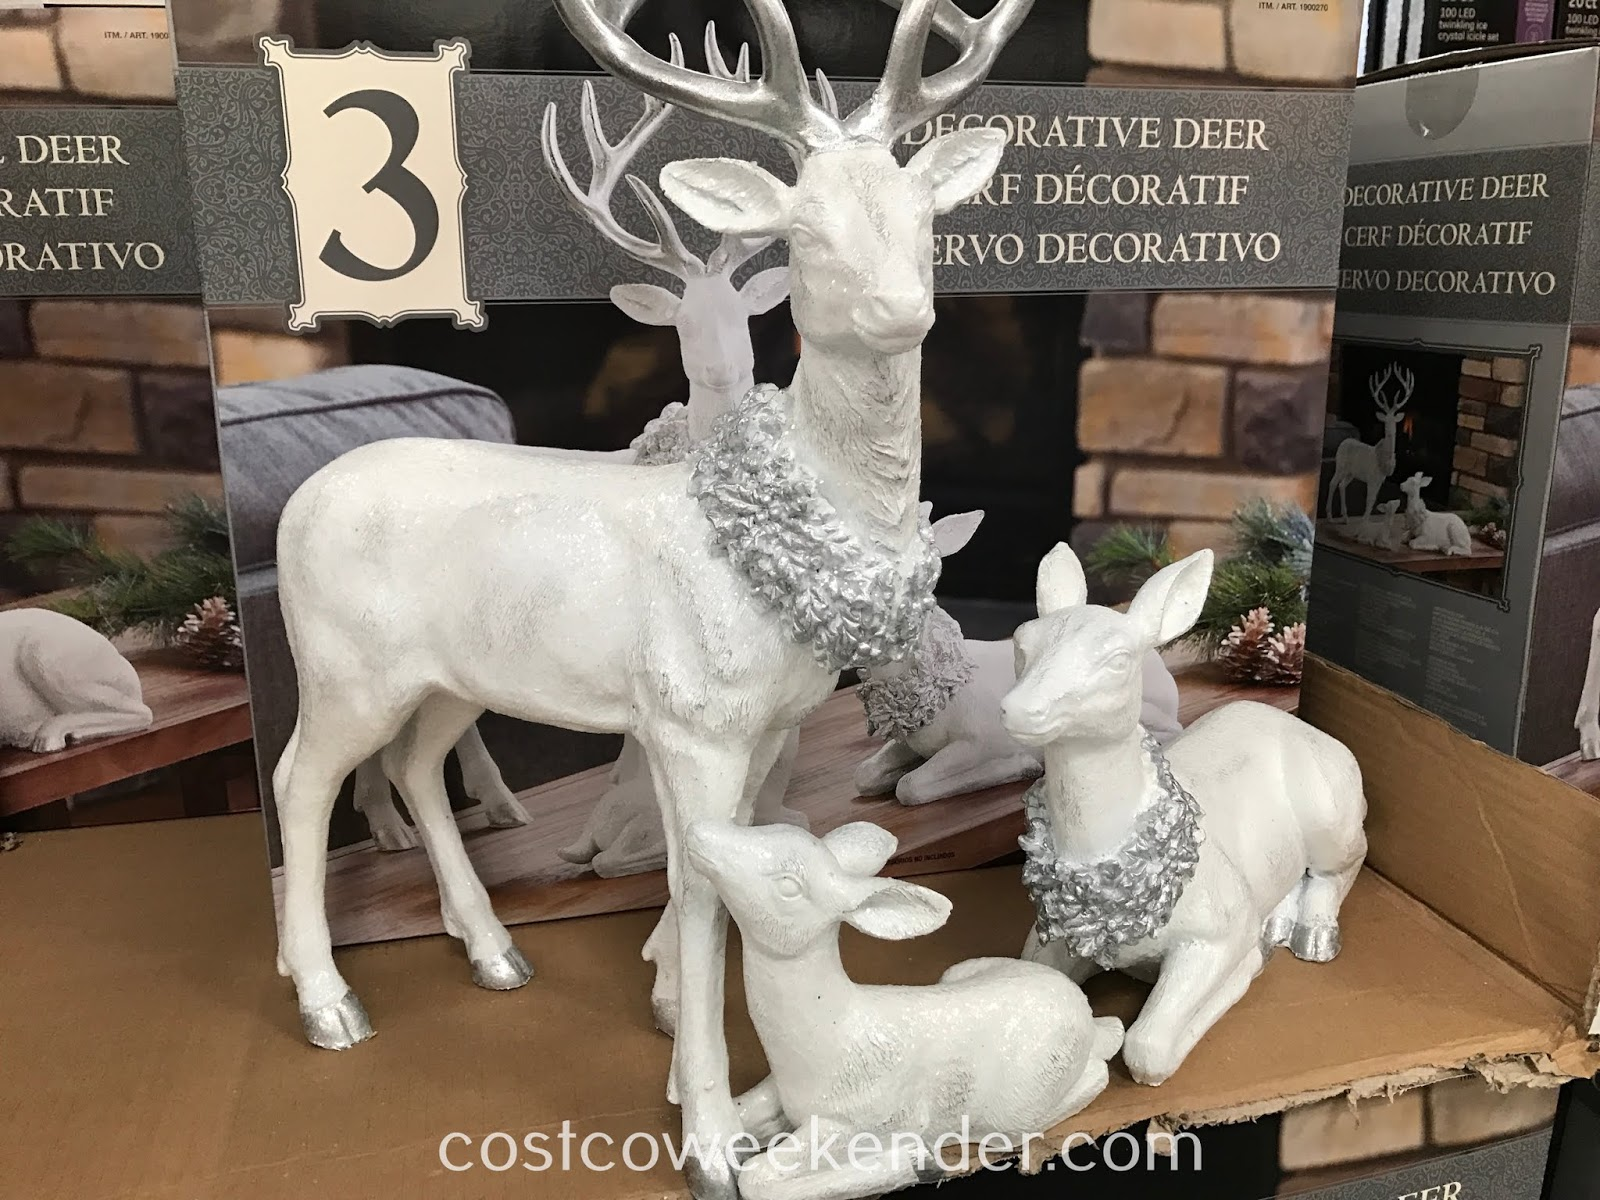 Decorate your home this winter with the Table Top Decorative Deer Family